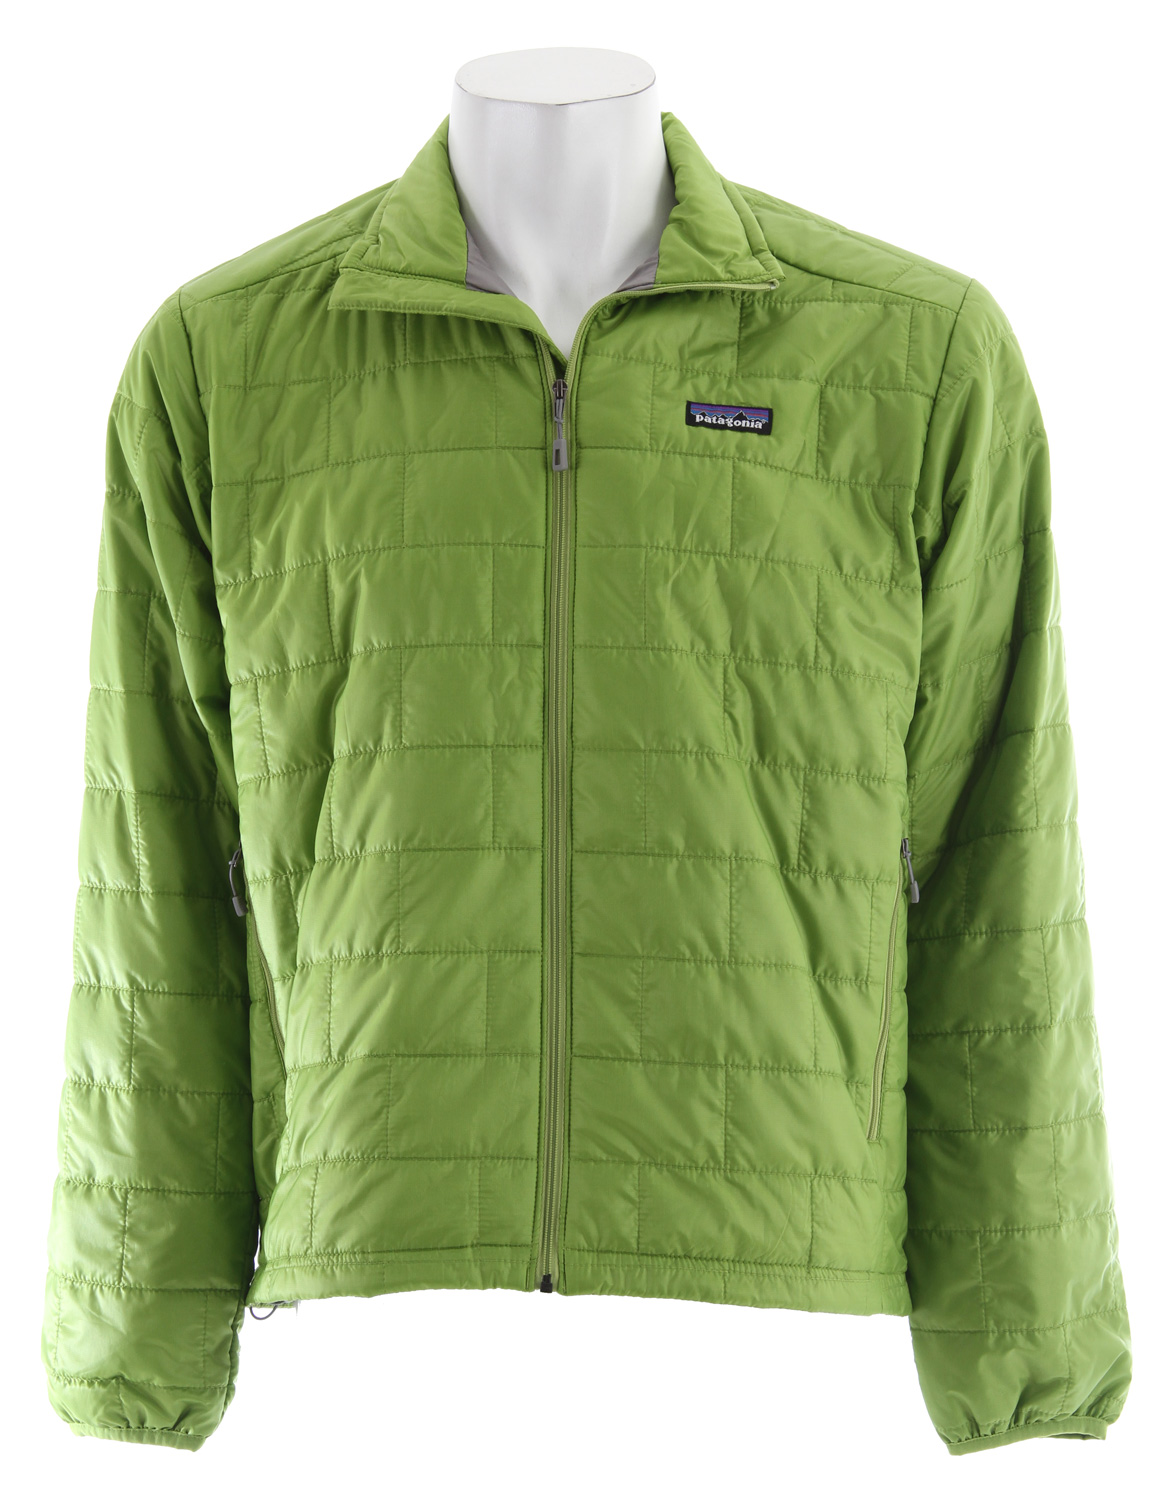 Take our classic original Nano Puff Pullover, add a full-length zipper for greater all-around ease and, presto, the versatile Nano Puff Jacket. It is windproof and weather-resistant enough to wear as an insulated shell in a gusty snowstorm, trim enough to pull on for chilly rock pitches (and still see your footholds), and warm enough for light belay parka duty on quick alpine dashes. The wind-blocking, moisture-shedding 100% recycled polyester shell also glides effortlessly, whether worn as an outer or midlayer. Low-bulk, hydrophobic, highly compressible PrimaLoft One (60-g) insulation traps heat with remarkable efficiency, even when wet. It packs down to practically nothing and stuffs into an internal zippered chest pocket that has a carabiner clip-in loop. It also has two zippered handwarmer pockets, elasticized cuffs and a dual-adjust drawcord hem to seal out wind and seal in warmth.Key Features of the Patagonia Nano Puff Jacket: Lightweight recycled polyester ripstop shell with a Deluge DWR (durable water repellent) finish Lightweight 60-g PrimaLoft One polyester insulation provides excellent warmth and compressibility Unique quilt pattern holds insulation in place, which promotes durability and longevity Pockets: Two zippered handwarmers; one internal zippered chest pocket, doubles as a stuff sack and has a carabiner clip-in loop Dual-adjust drawcord hem seals in warmth Shell: 1-oz 15-denier 100% recycled polyester. Insulation: 60-g PrimaLoft One 100% polyester. Lining: 1.4-oz 22-denier 100% recycled polyester. Shell and lining have a Deluge DWR (durable water repellent) finish 354 g (12.5 oz) Made in Vietnam. Recycled Polyester: We recycle used soda bottles, unusable second quality fabrics and worn out garments into polyester fibers to produce many of our clothes. Deluge DWR: Patagonia's proprietary durable water repellent fabric finish, Deluge DWR, lasts substantially longer than standard DWRs. Garments with the Deluge DWR finish have like-new repellency after years of extensive use. - $106.95